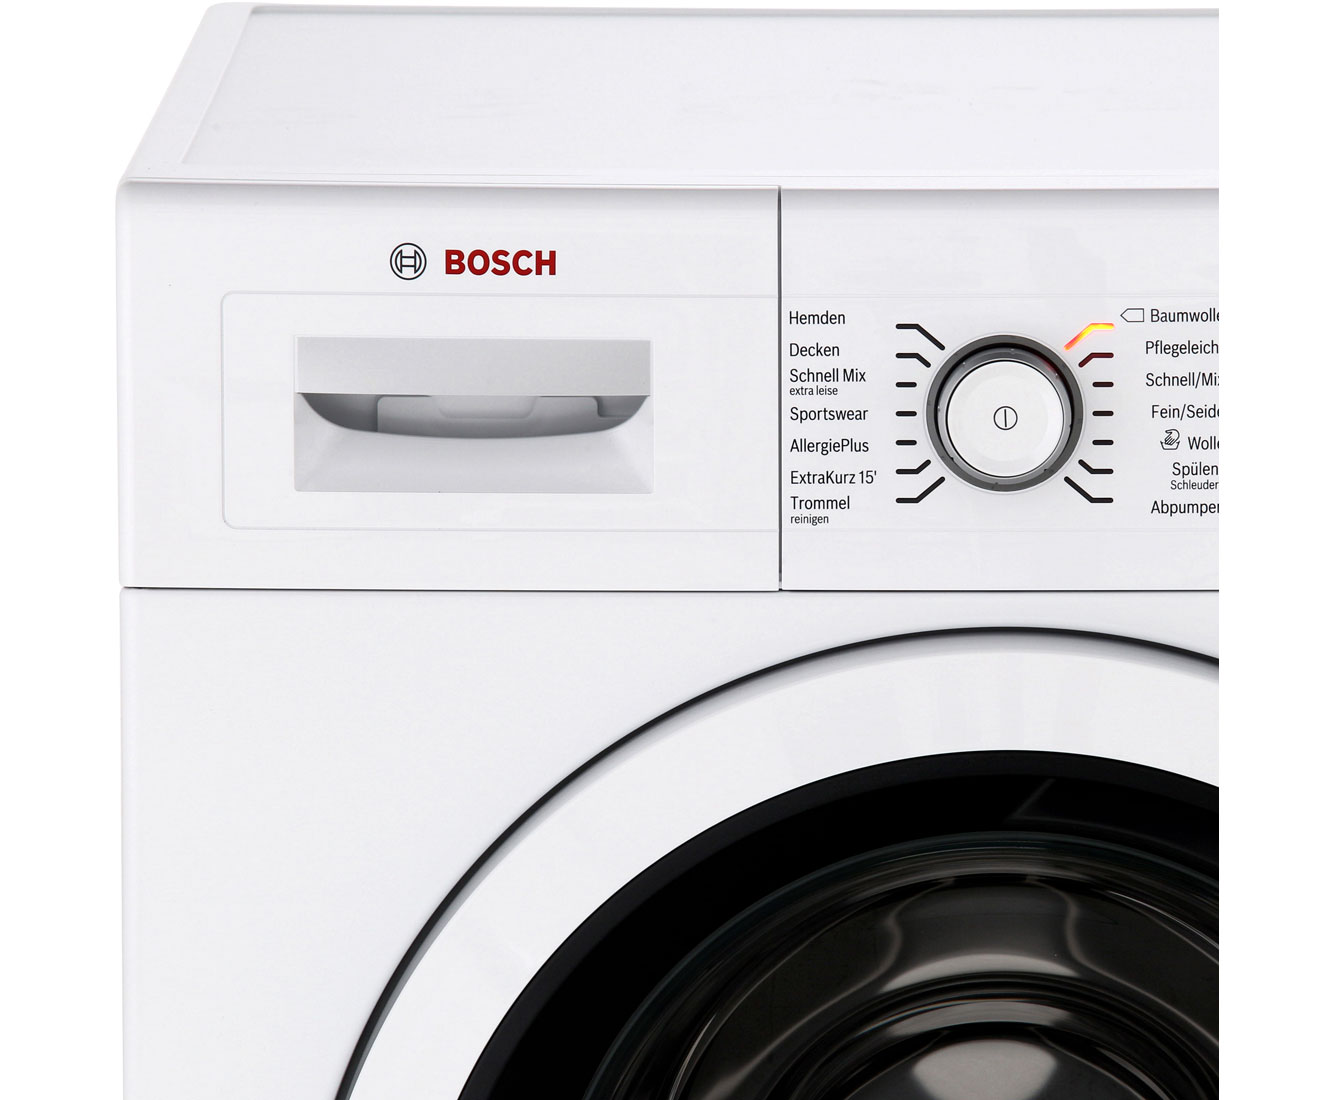 bosch waw28500 serie 8 waschmaschine freistehend weiss neu ebay. Black Bedroom Furniture Sets. Home Design Ideas